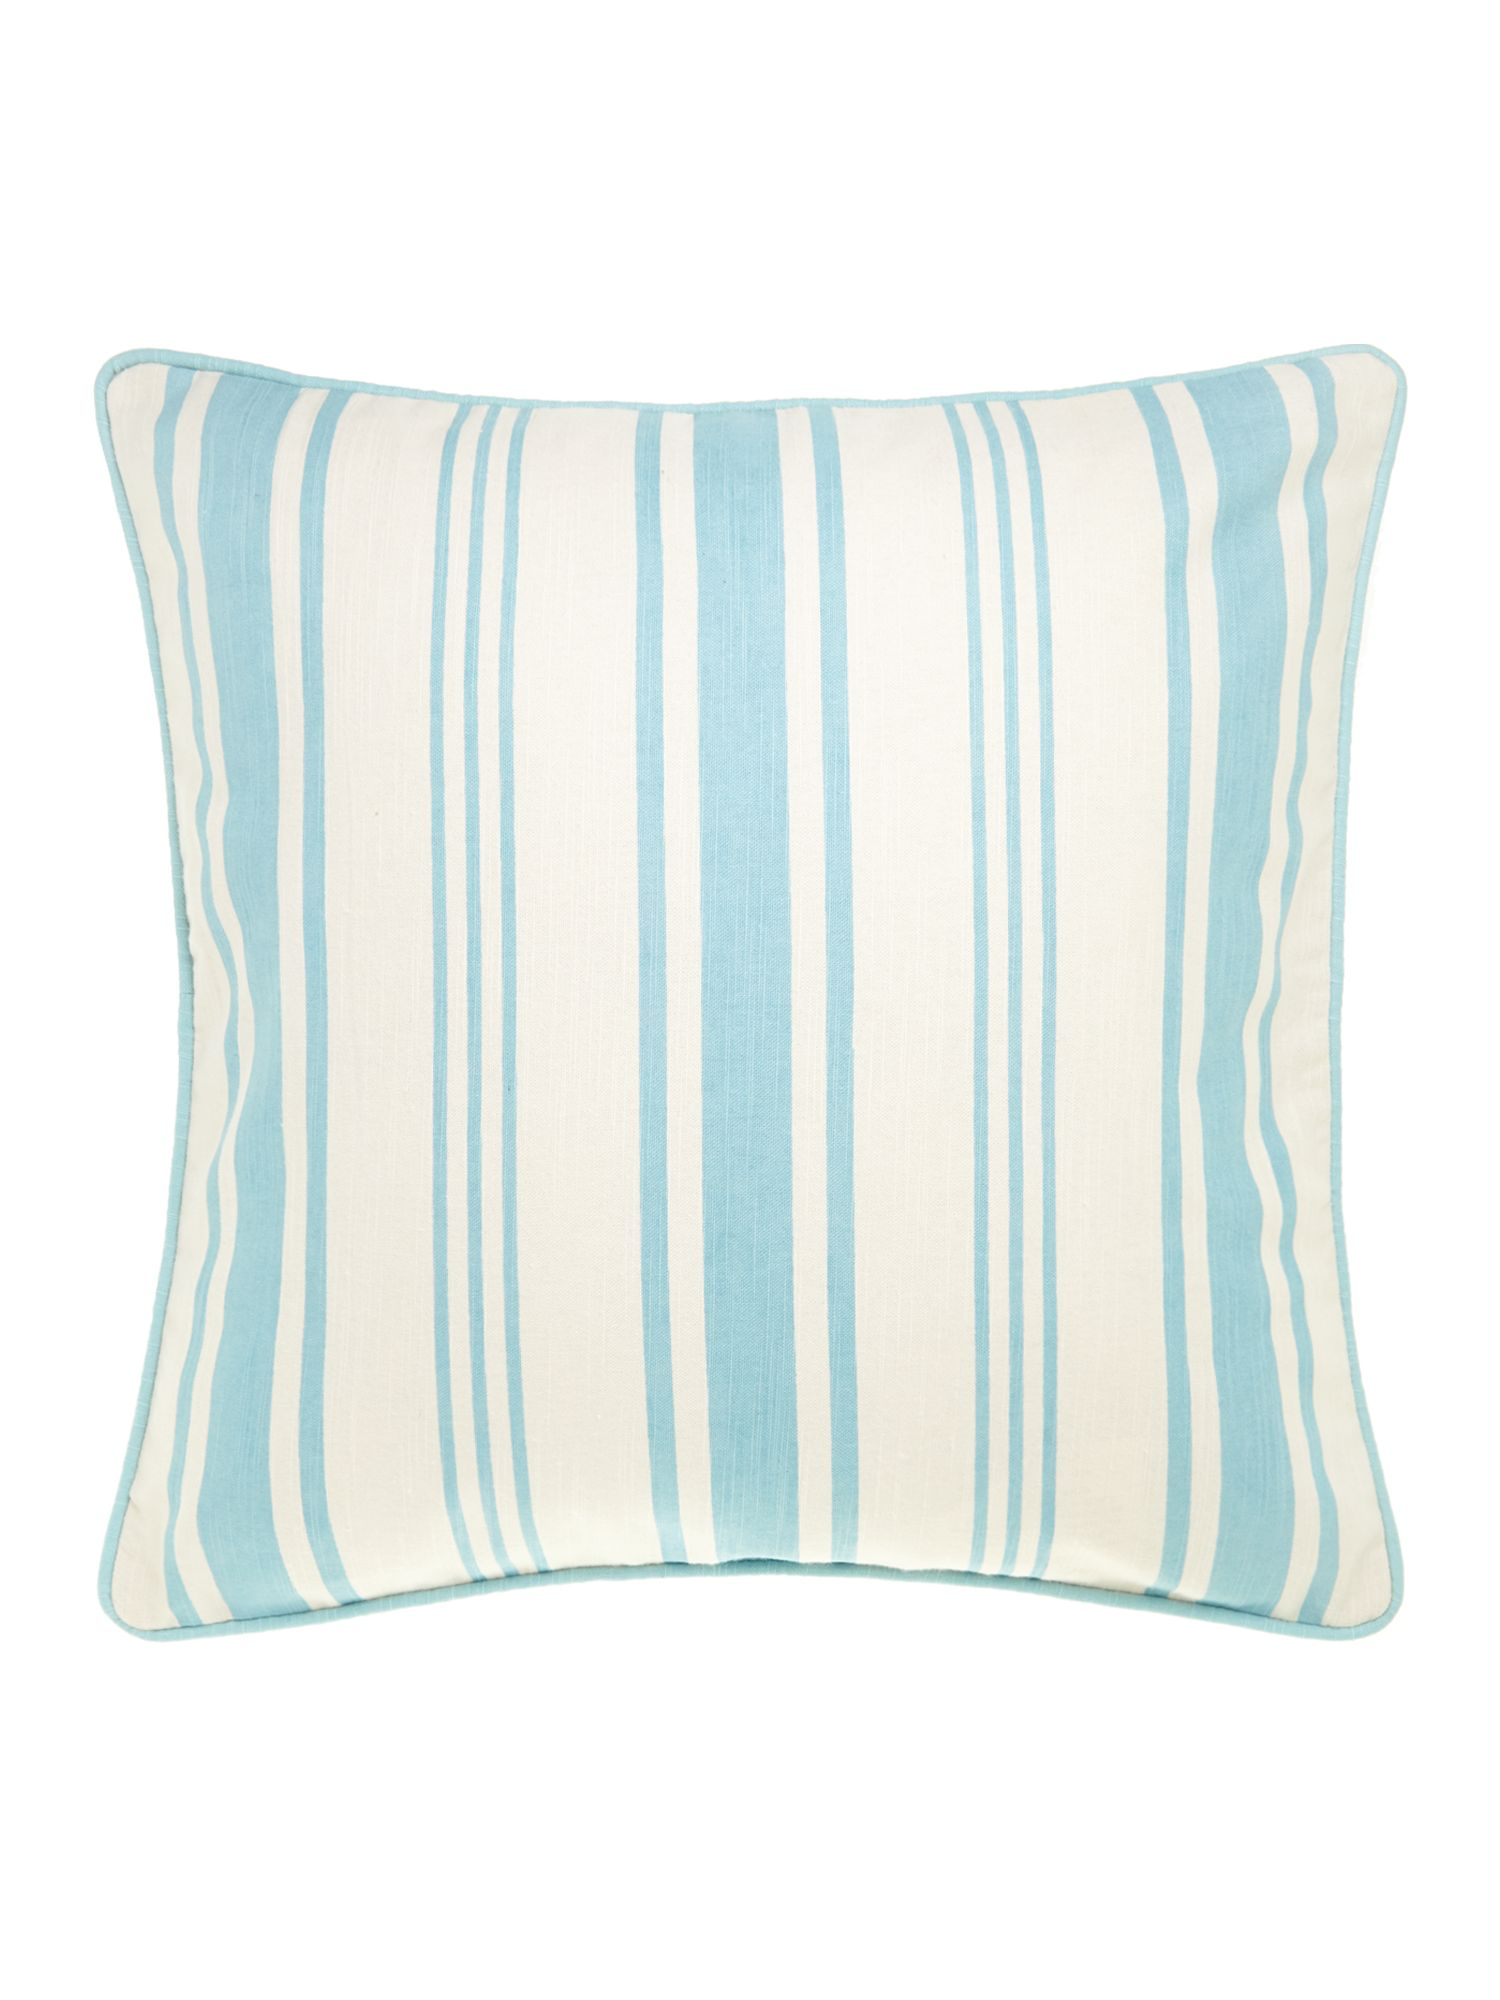 Stripe cotton cushion, duck egg